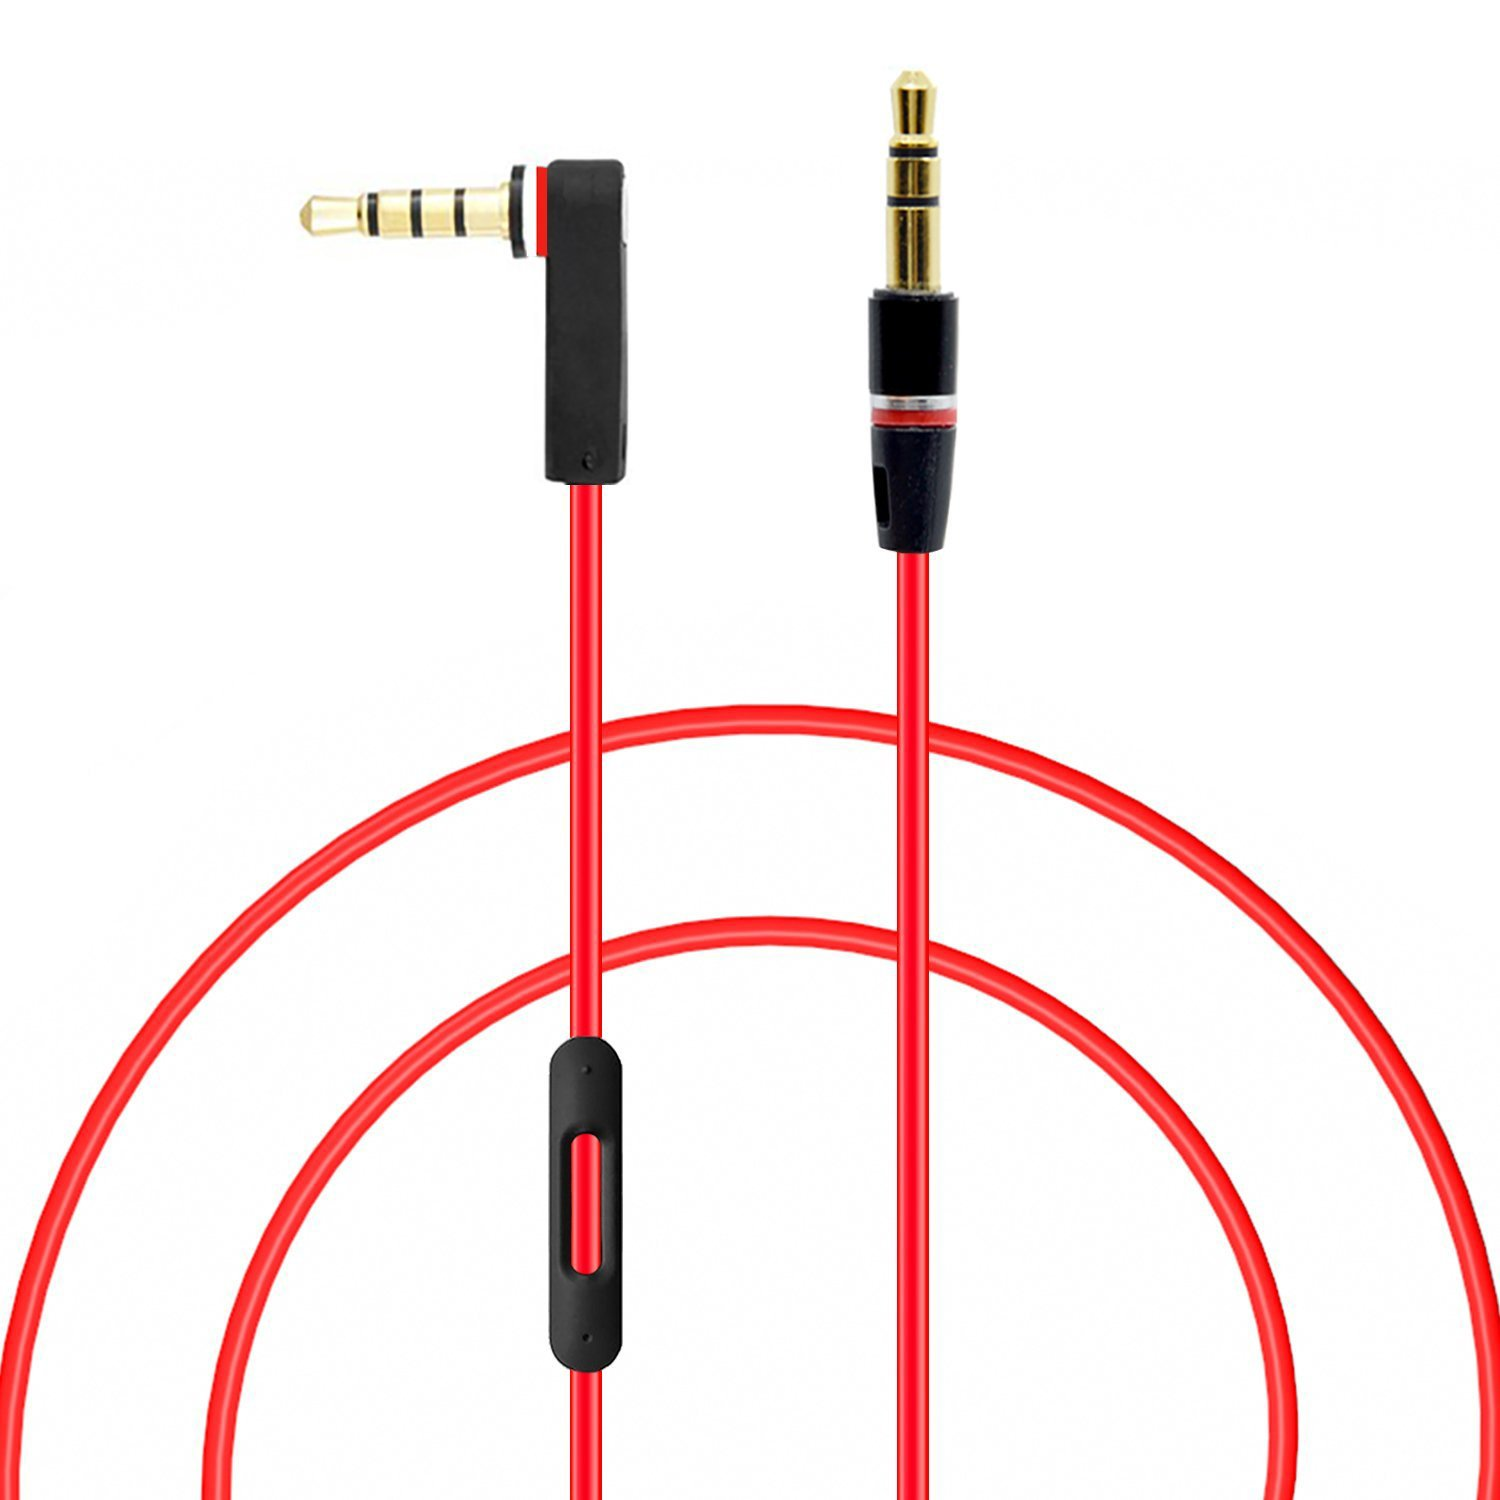 ca13dfbaab5 Buy Original Replacement Control Talk Cable For Beats by Dre Headphones  Solo Studio Mixr Wireless (Discontinued by Manufacturer) Online at Low  Prices in ...